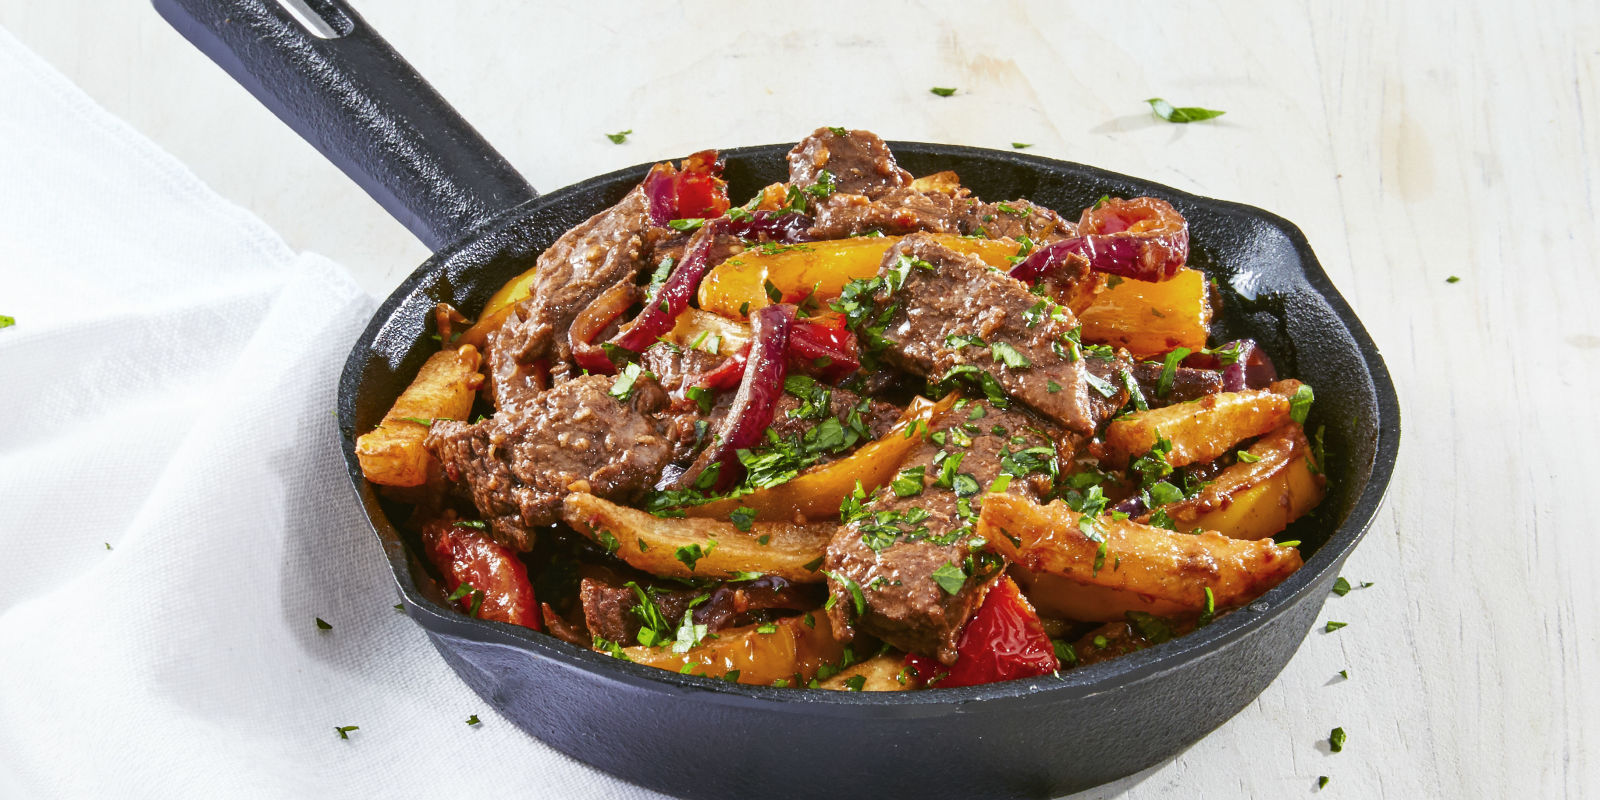 Sauteed Beef And Pepper Skillet With Fries